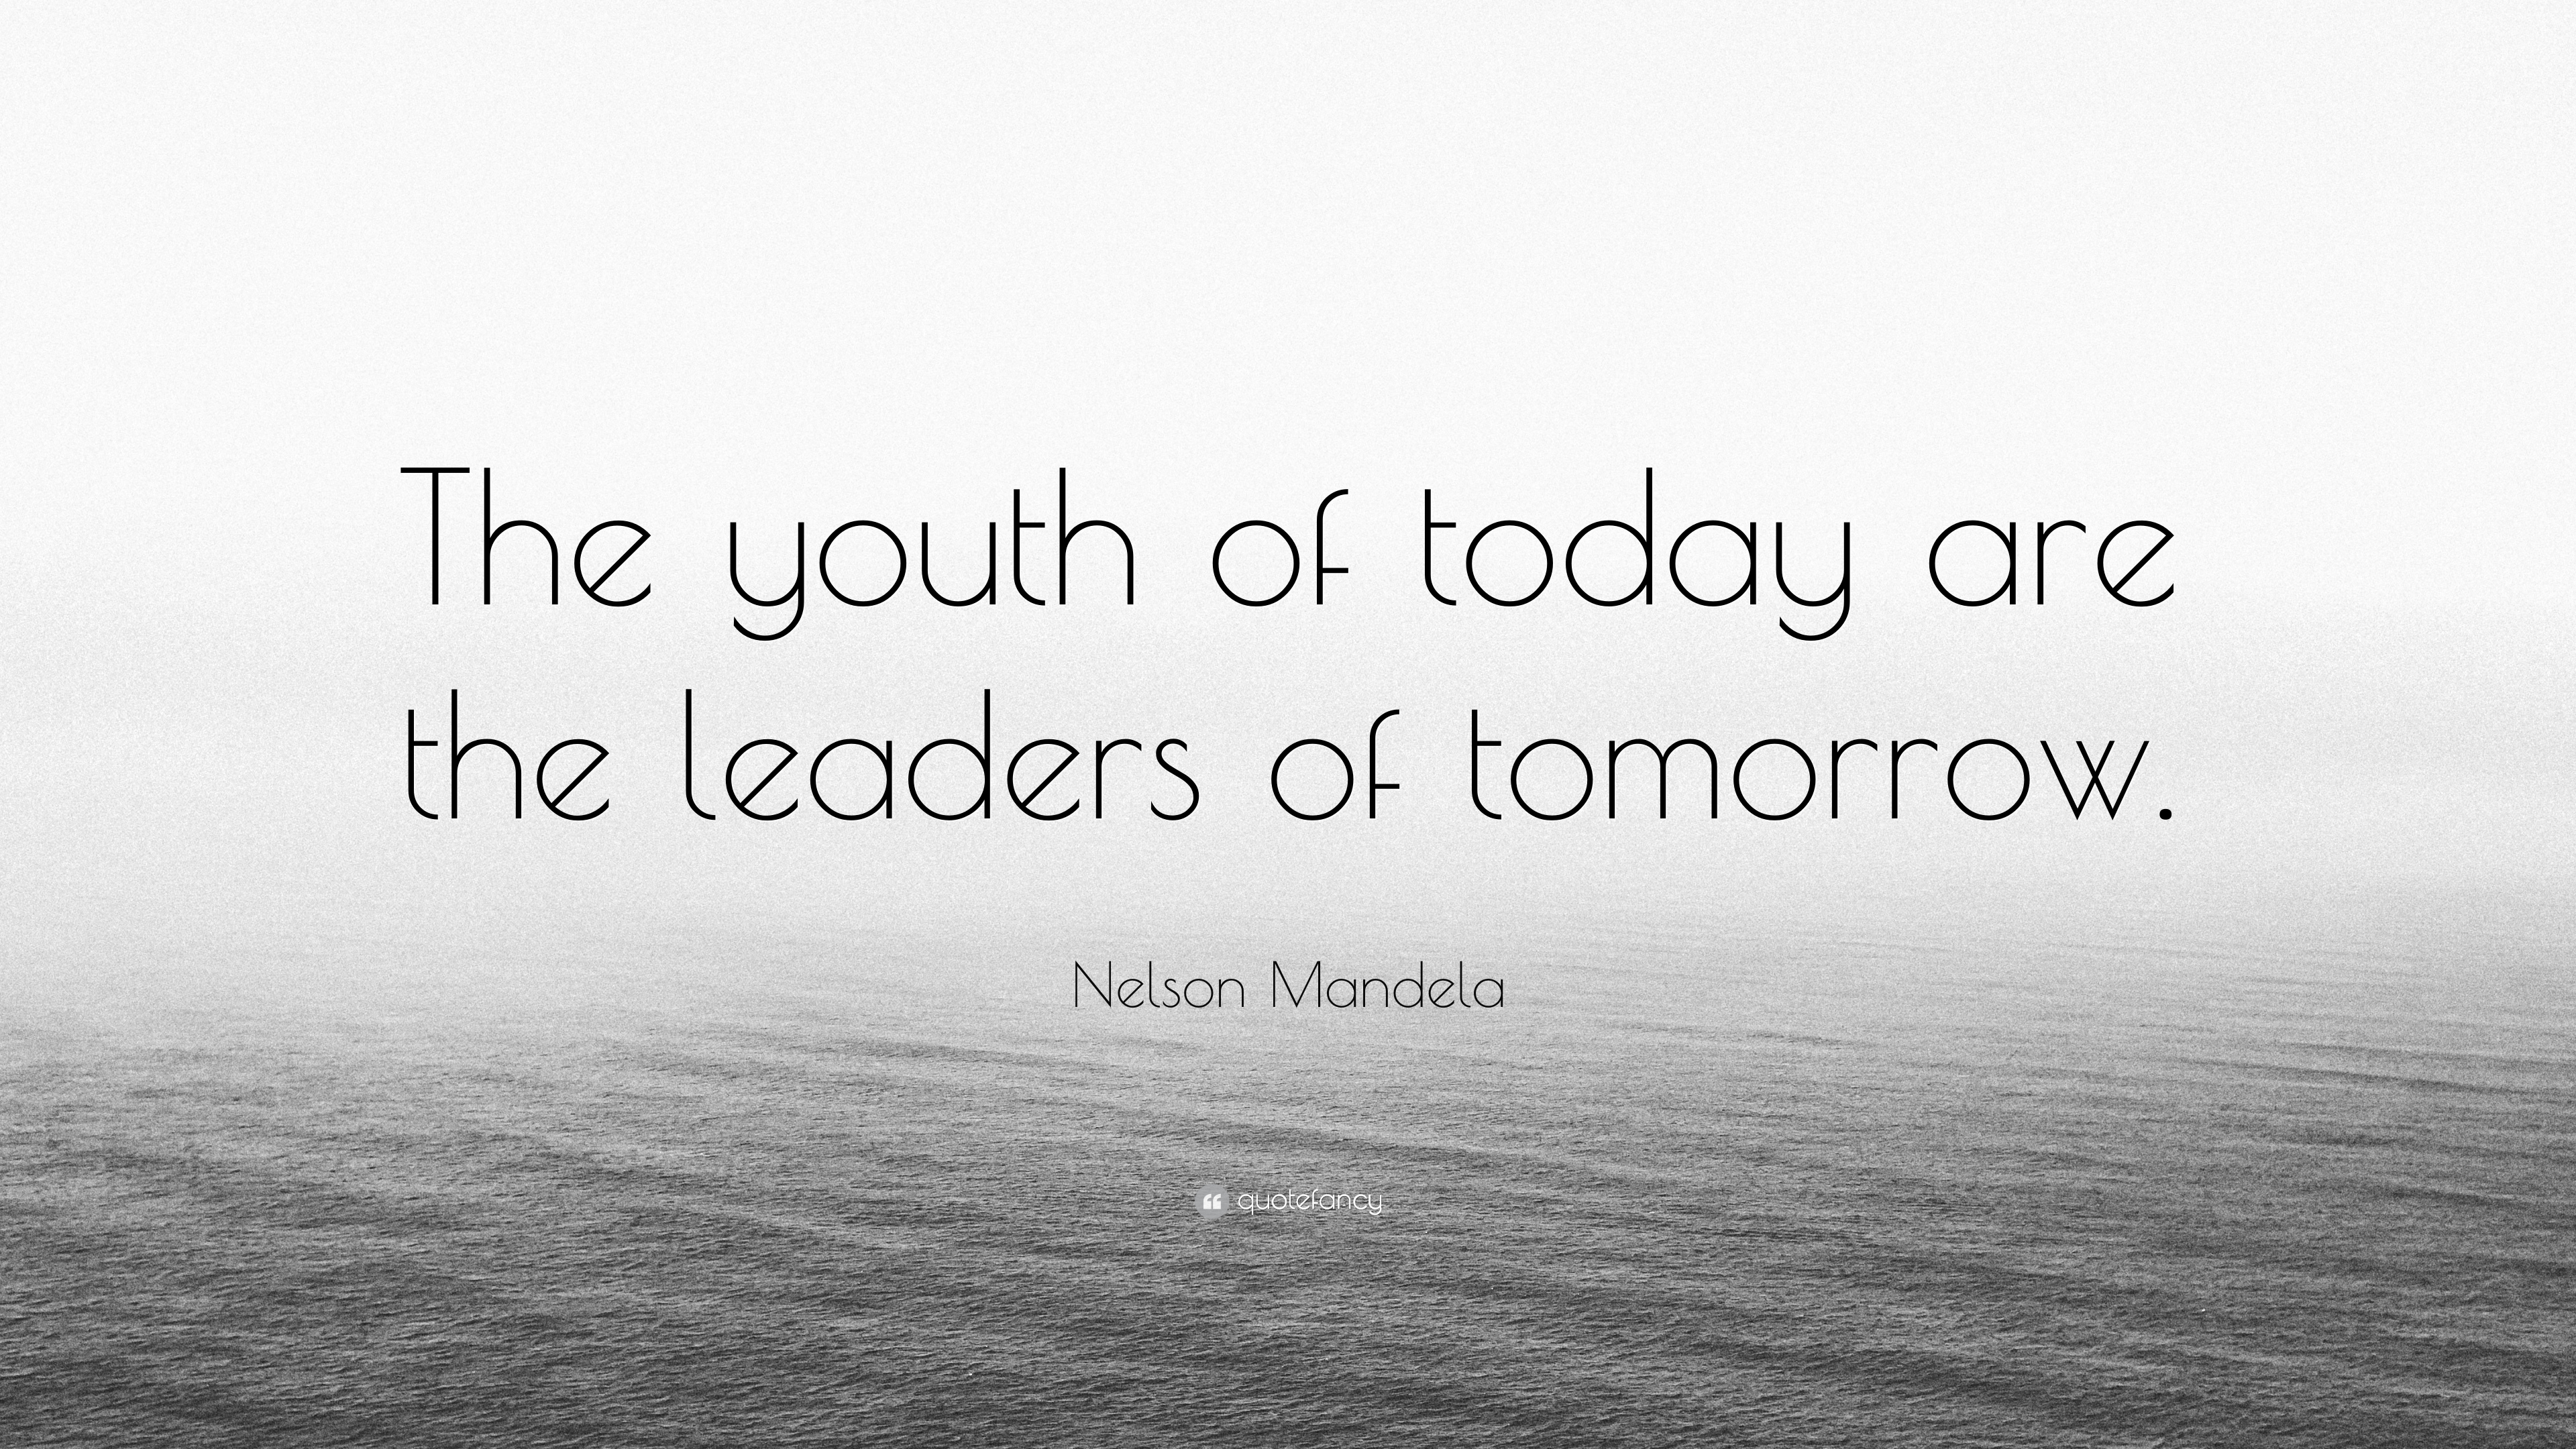 the children of today are the leaders of tomorrow quote